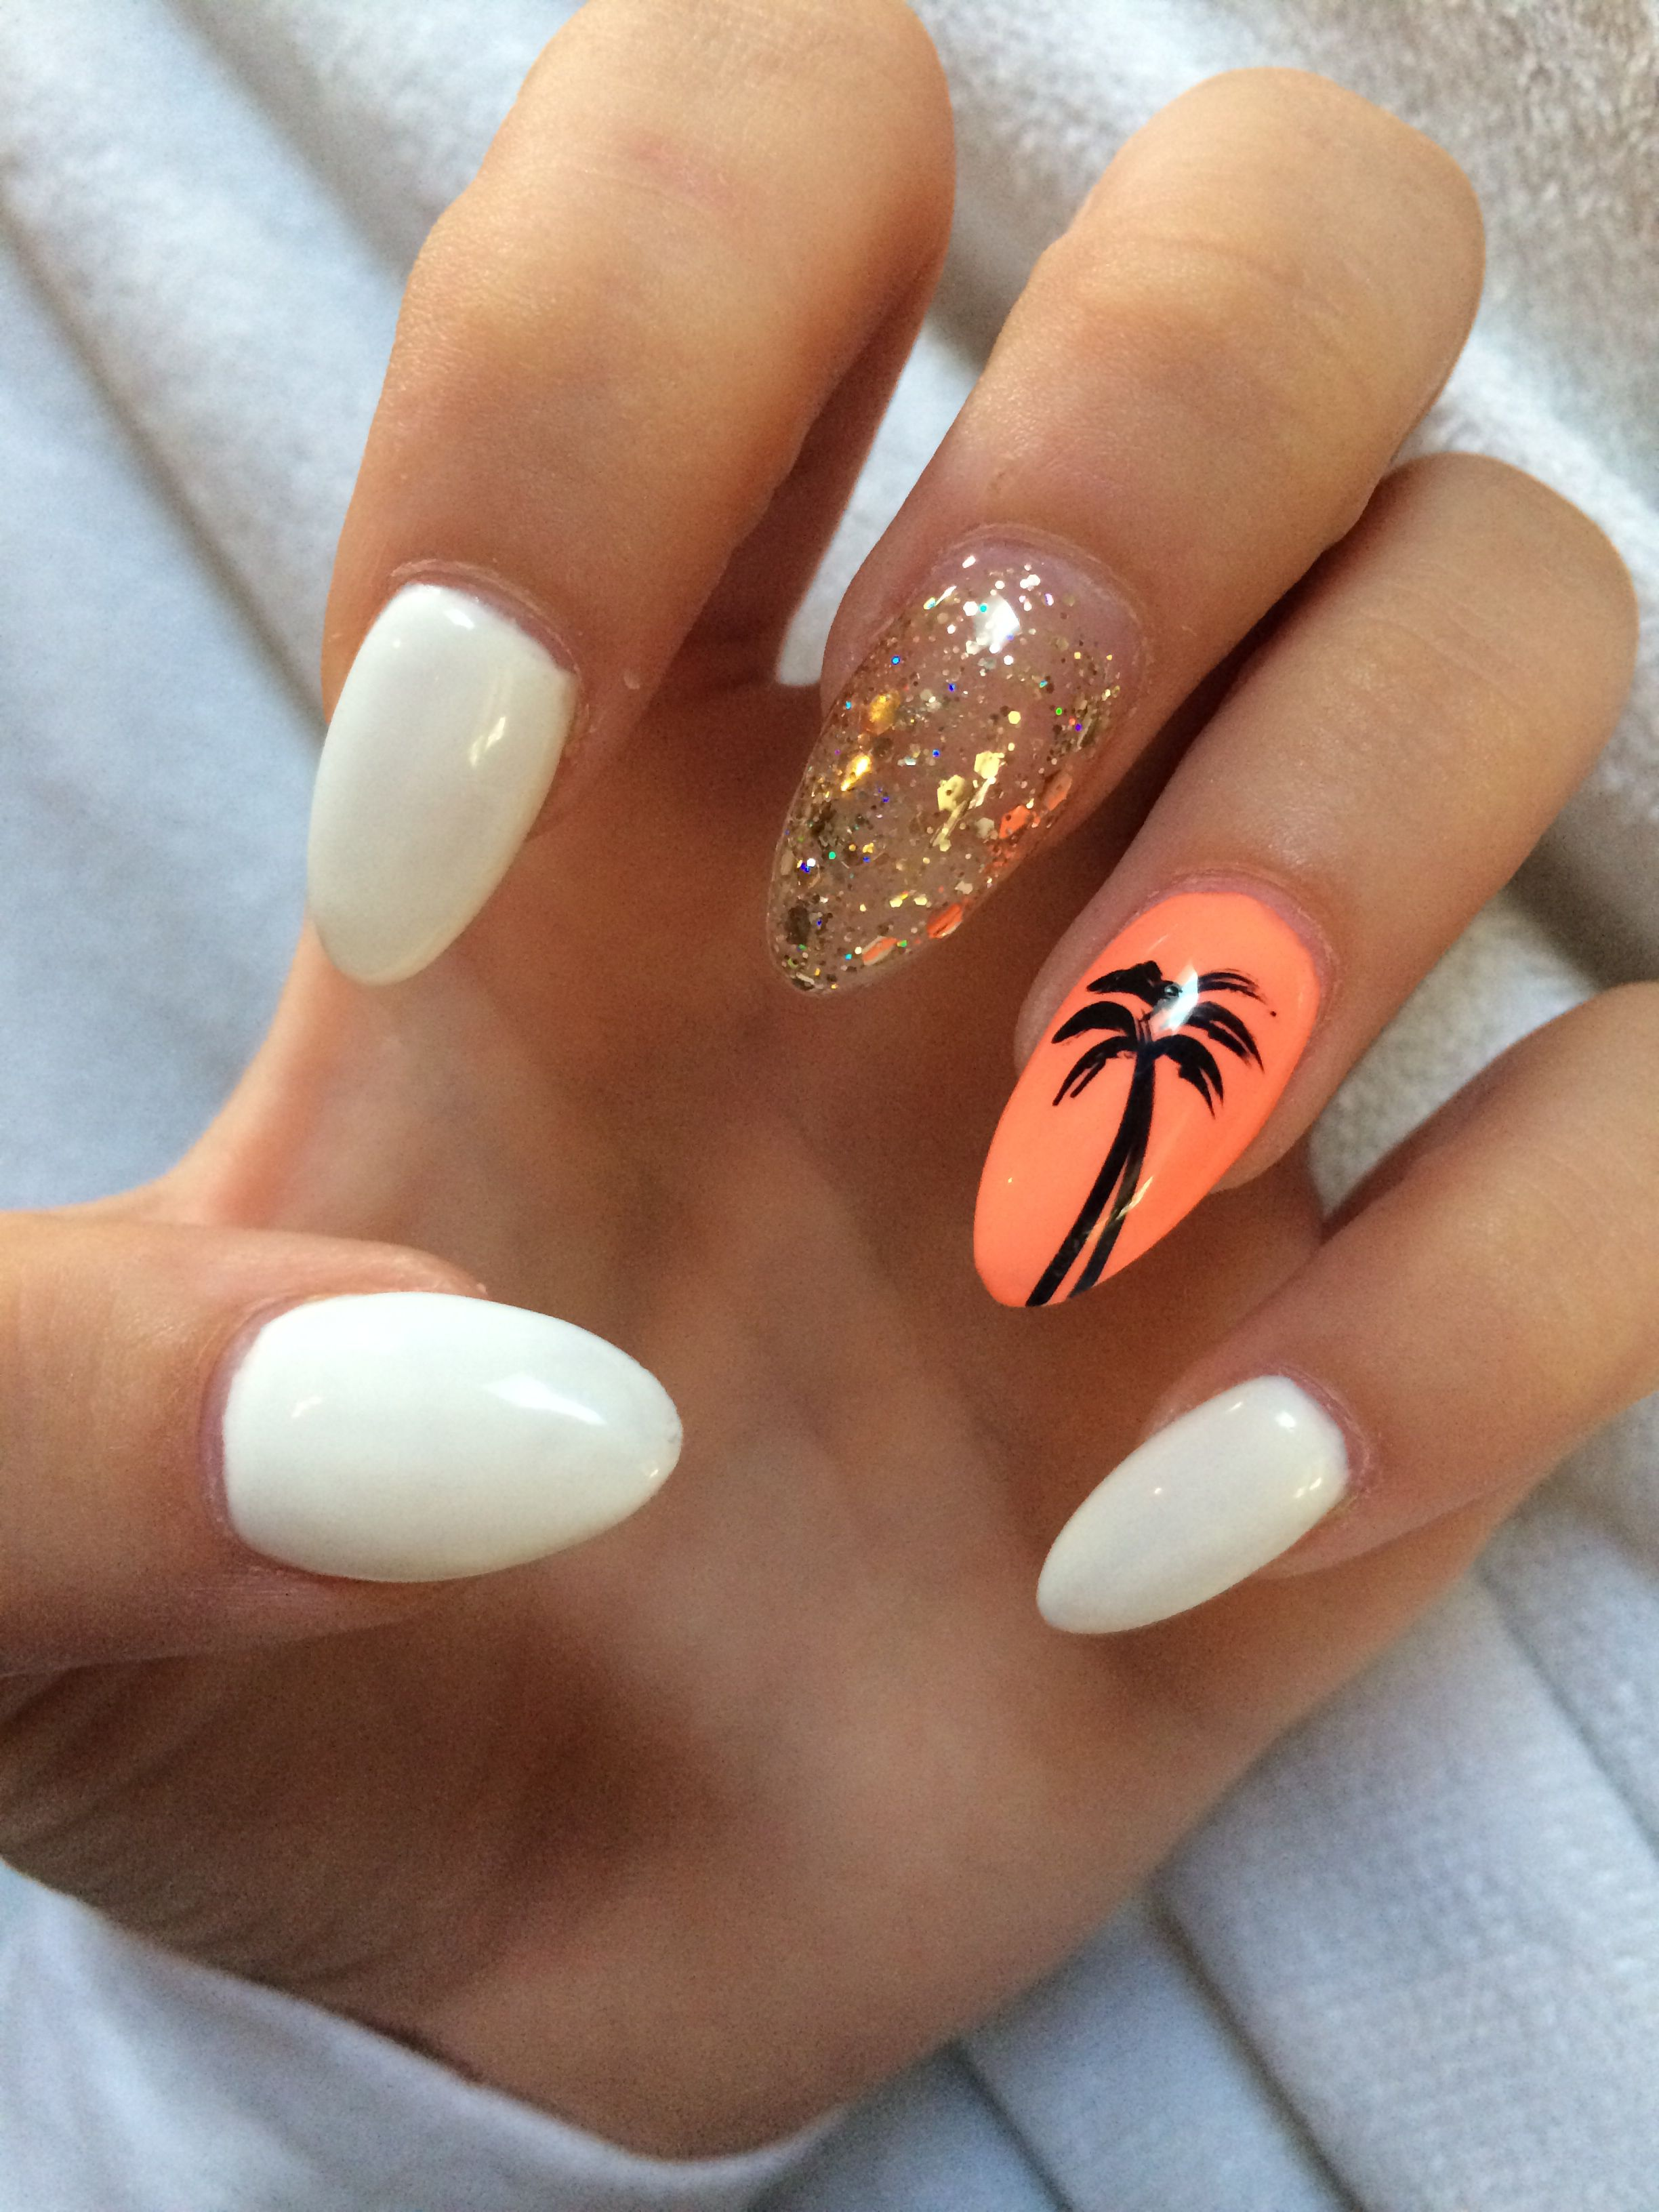 Vacation Nails Summer Holiday Nails Nail Designs Summer Acrylic Vacation Nails